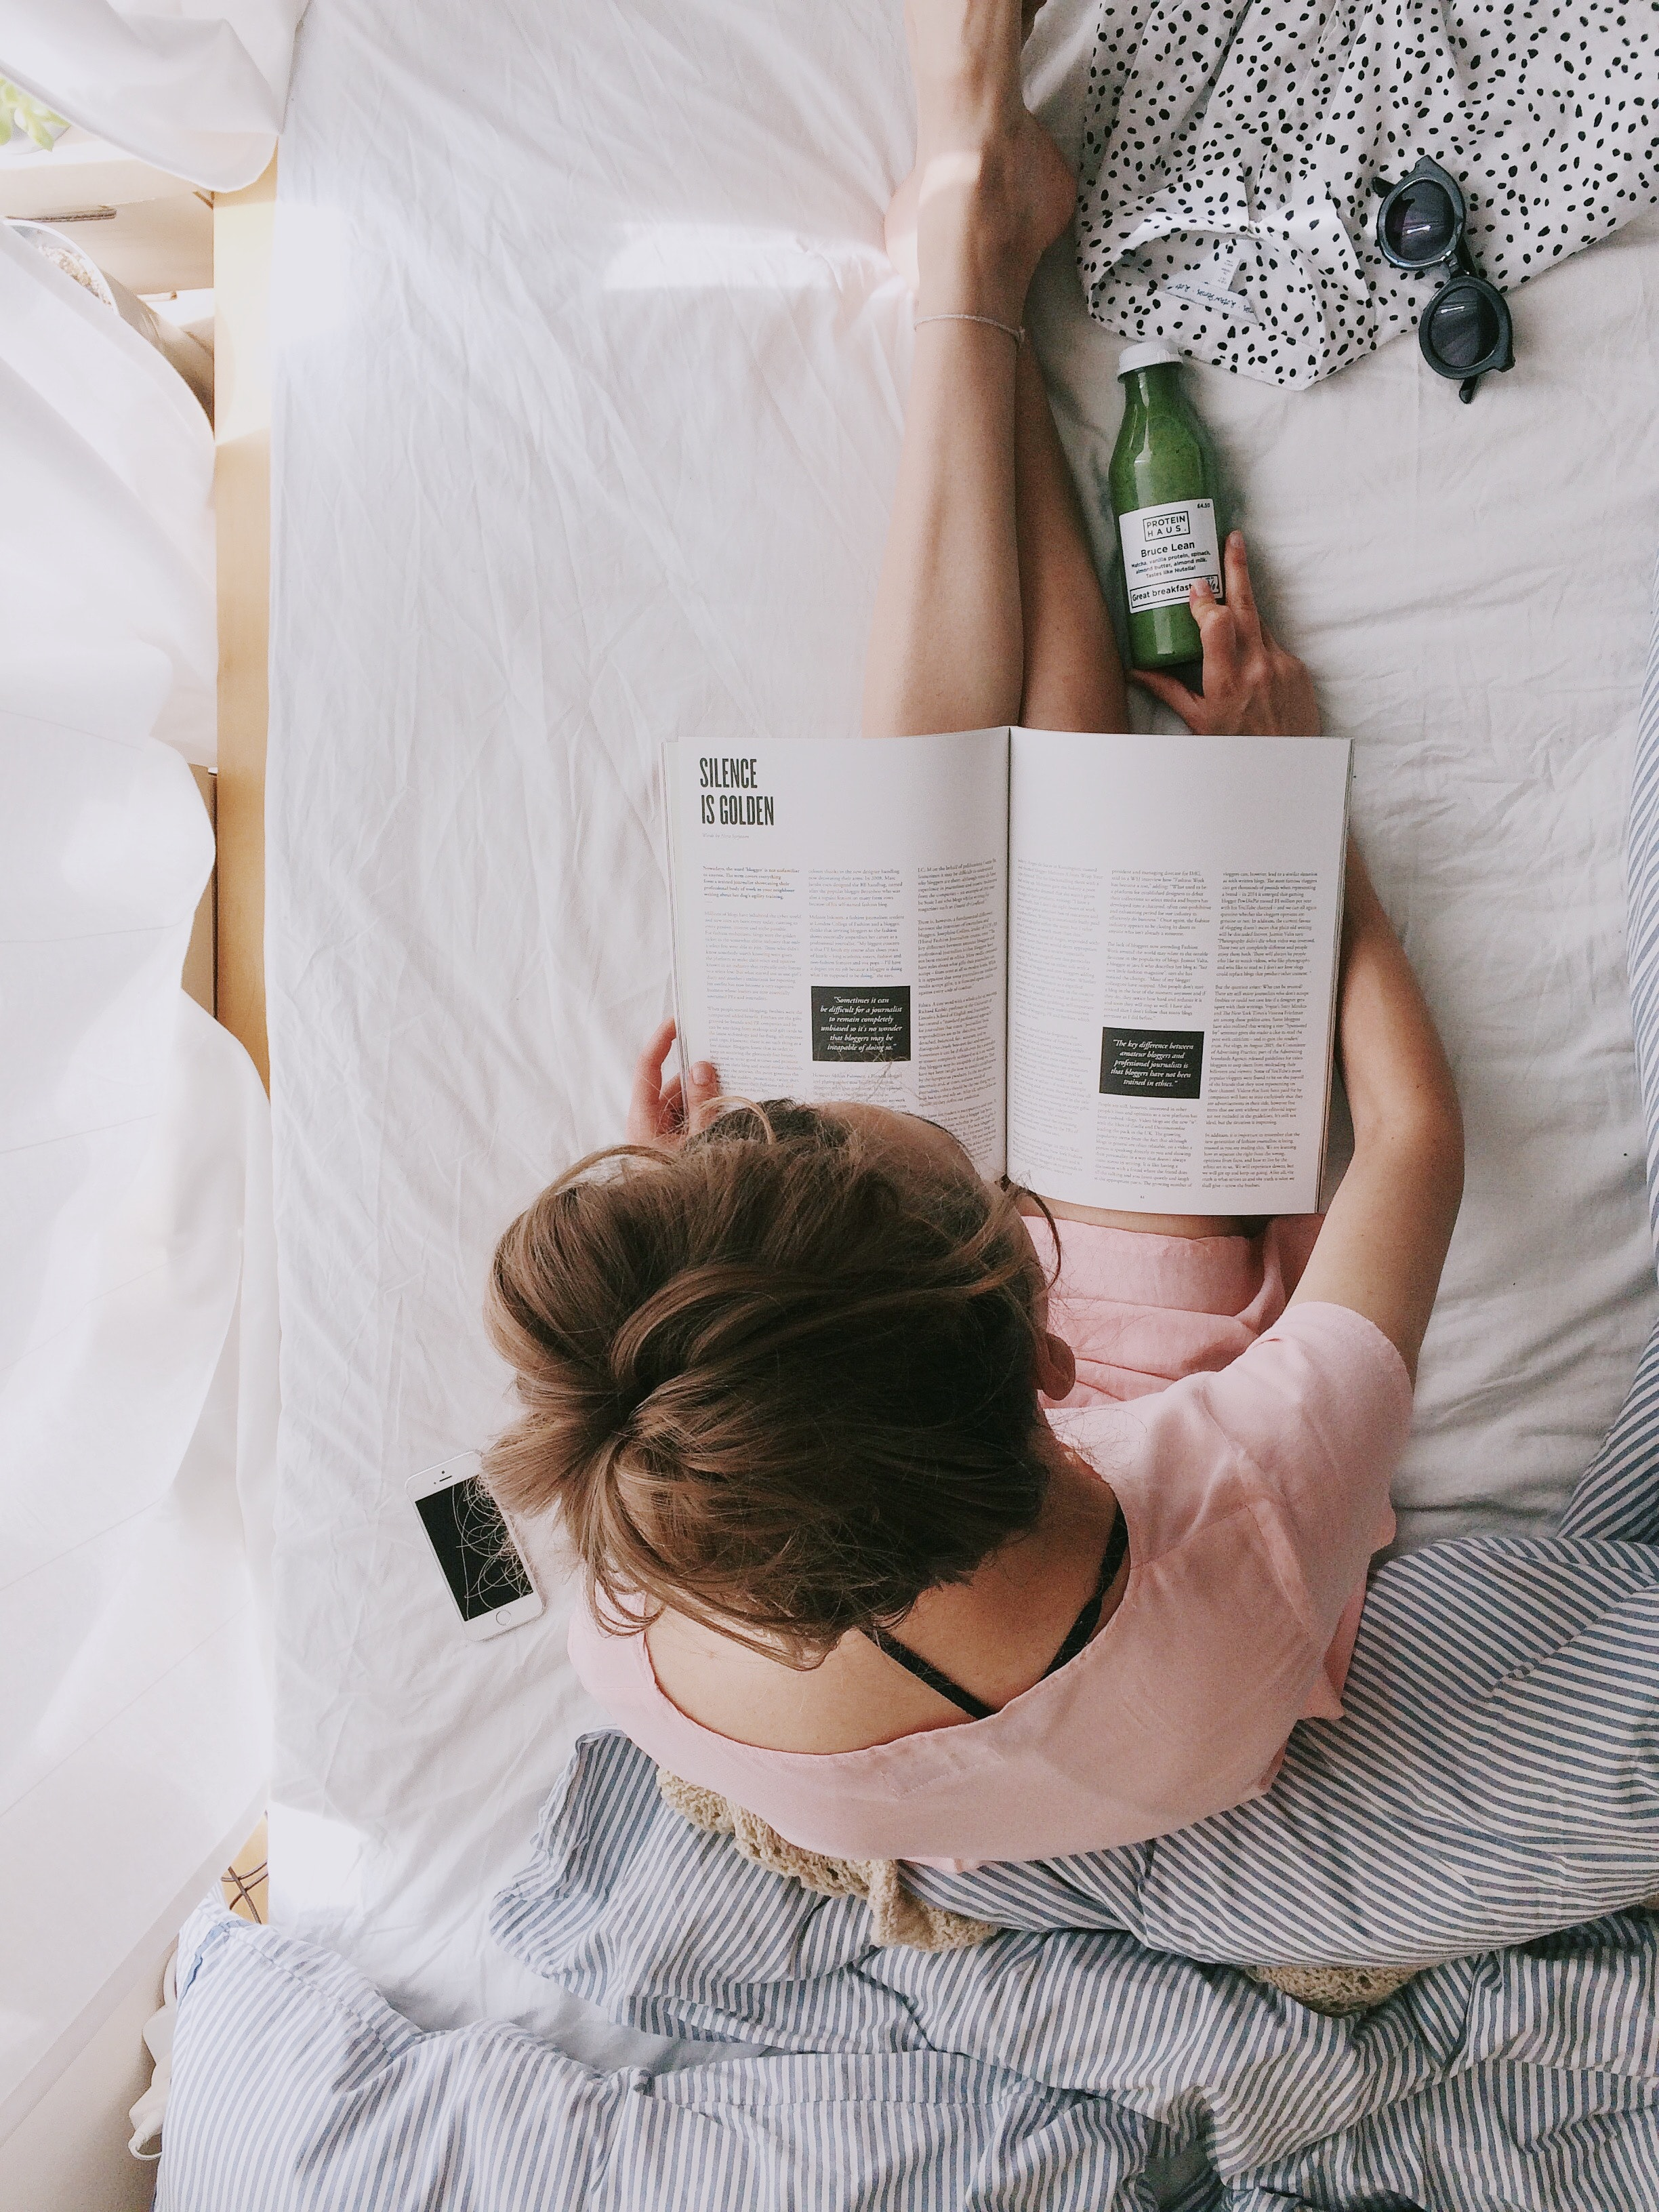 Image of influencer (woman) reading magazine [Source: Unsplash].